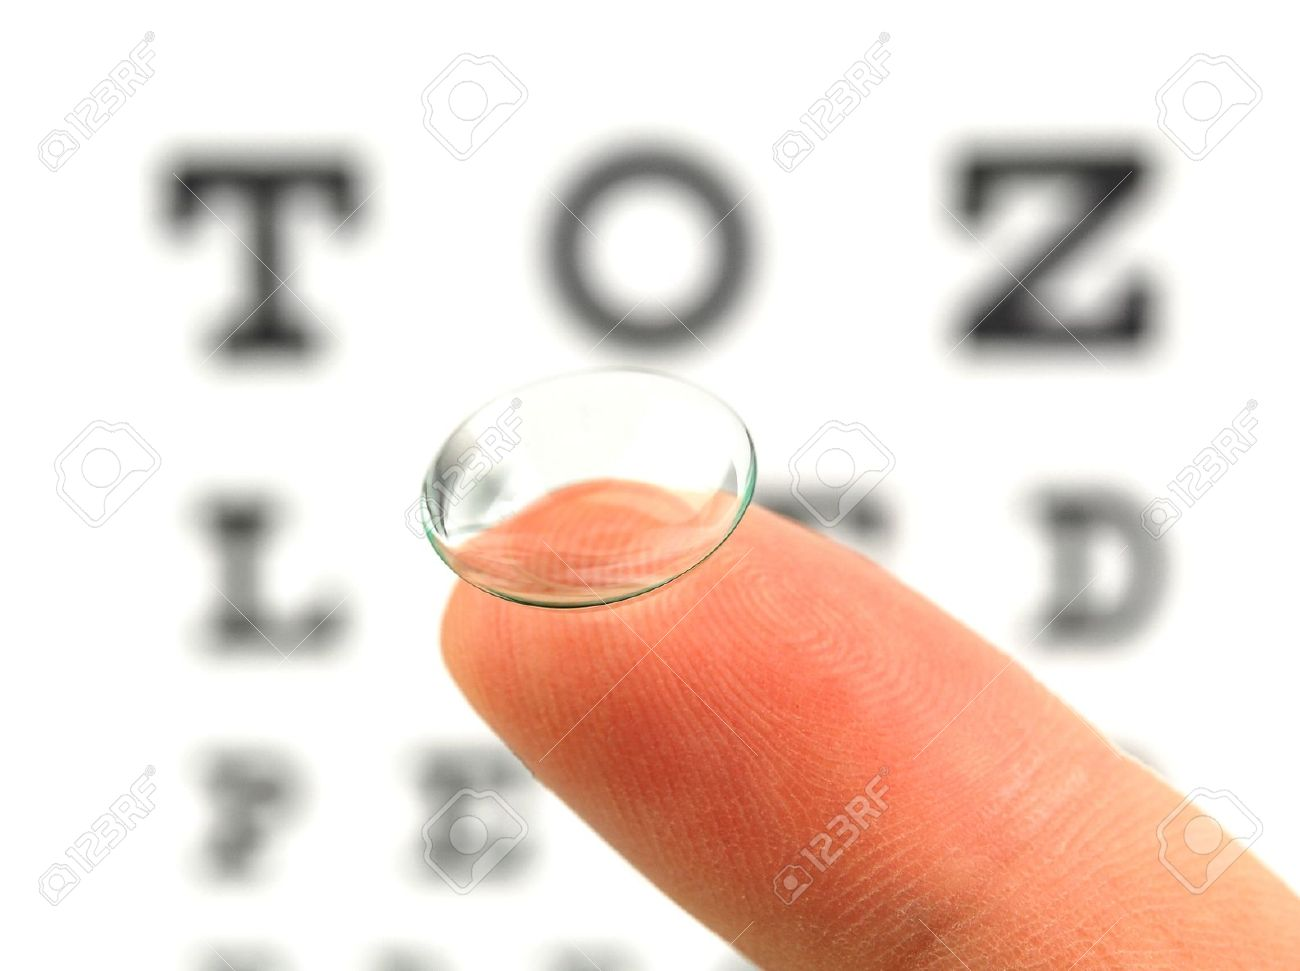 Contact lens on finger and snellen eye chart the eye test chart is contact lens on finger and snellen eye chart the eye test chart is shown blurred nvjuhfo Choice Image